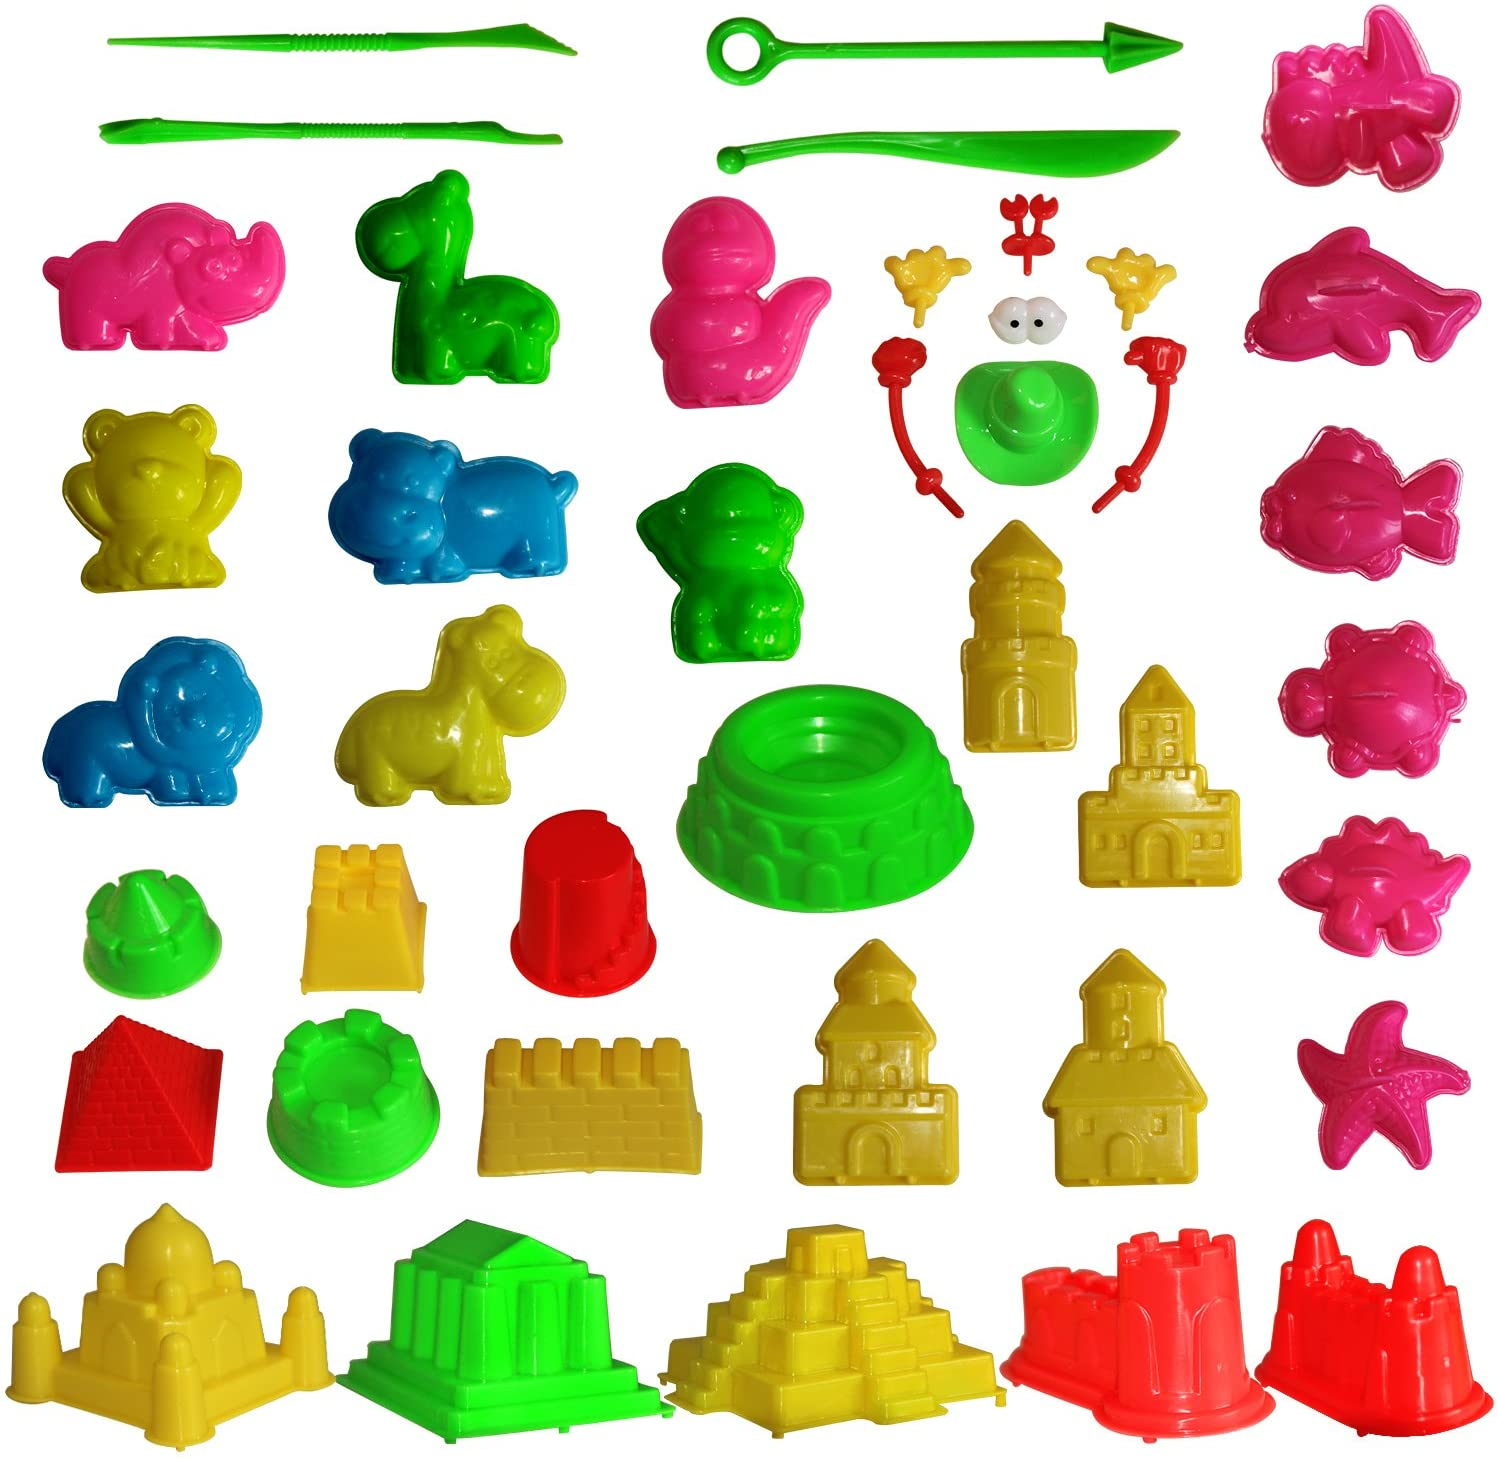 Mukool Sand Molding Tools 42pcs Mold Activity Set Compatible with Any Molding Sand: Toys & Games